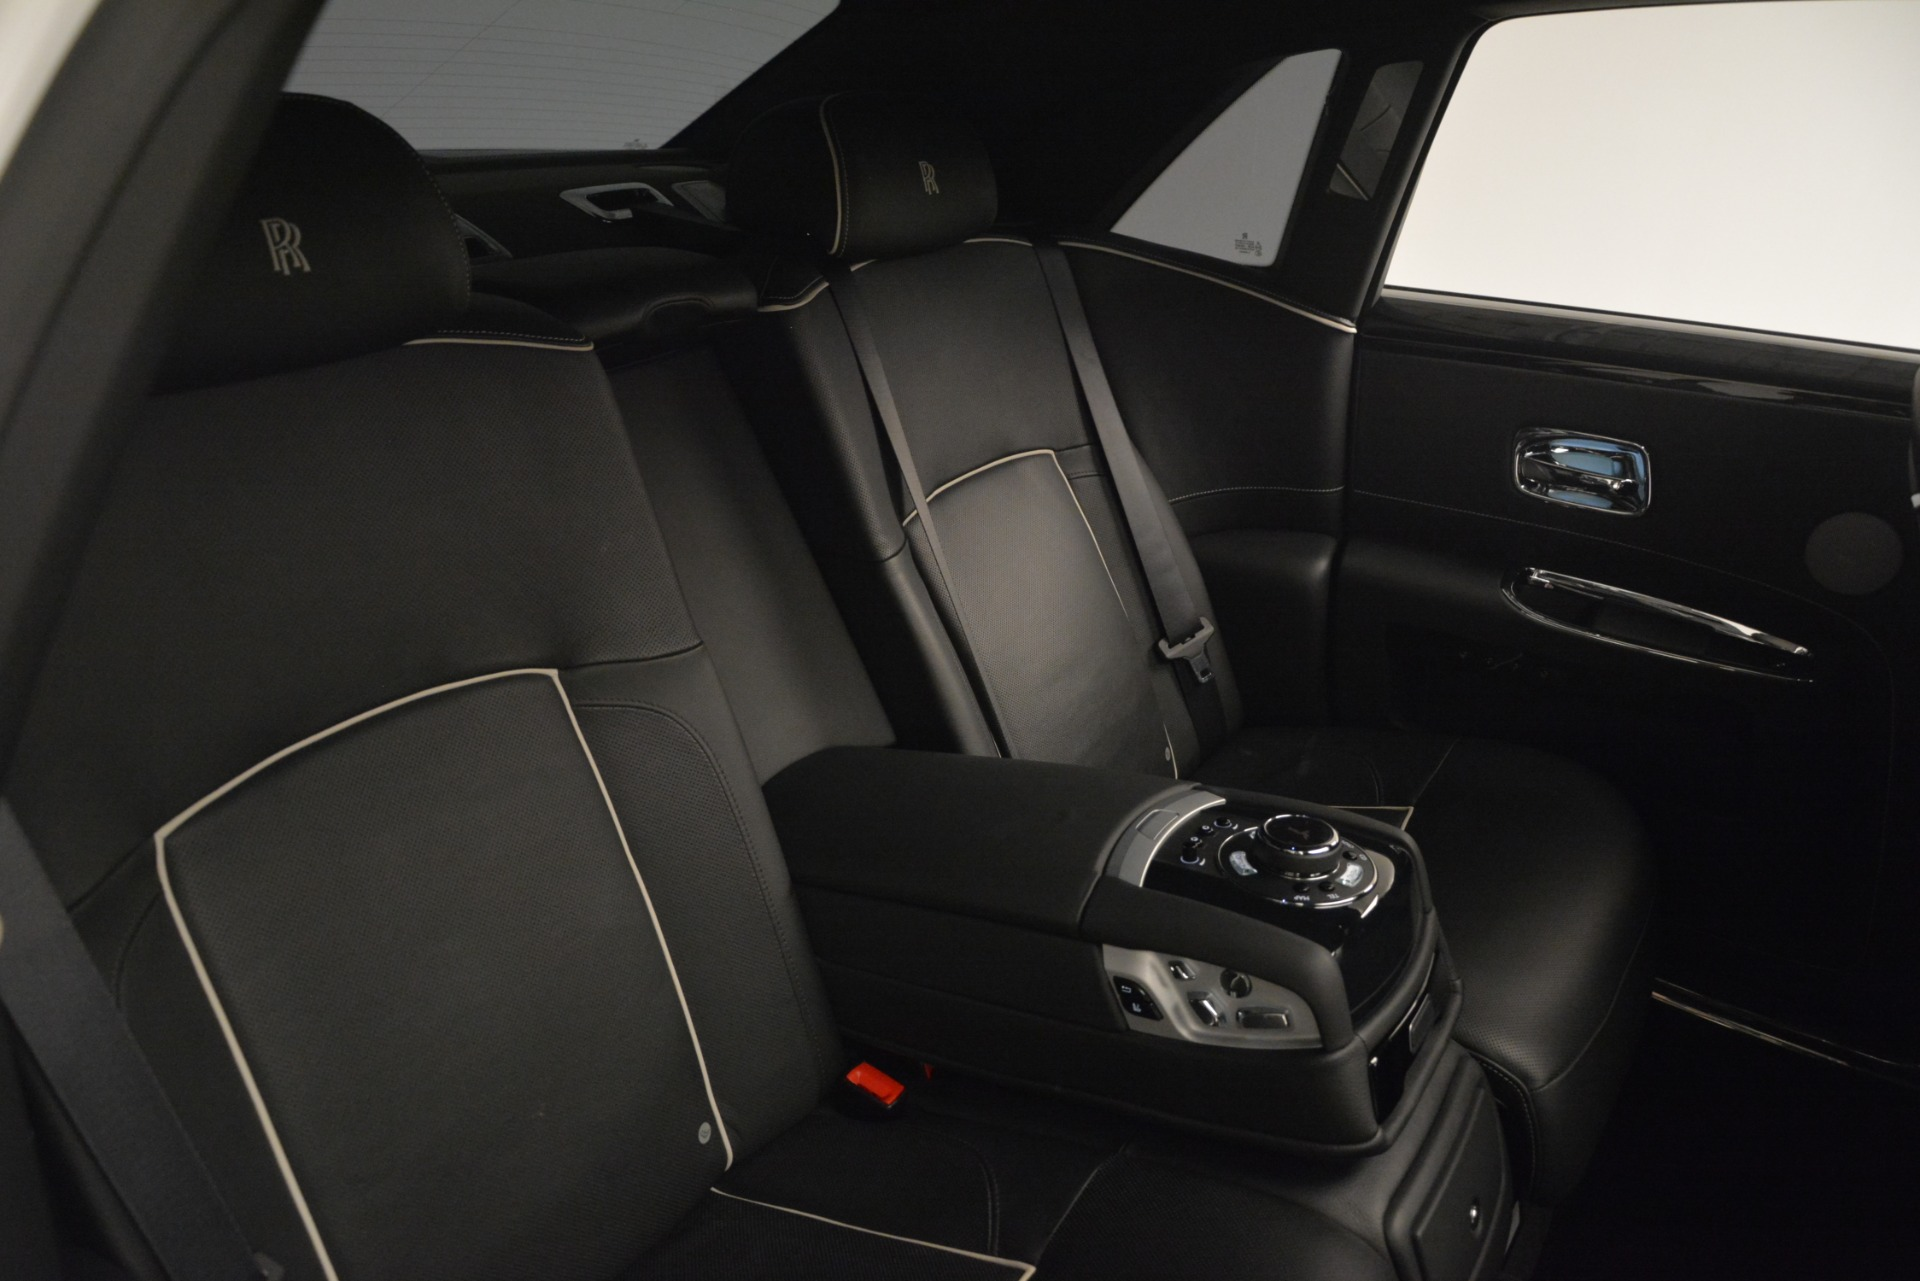 Used 2014 Rolls-Royce Ghost V-Spec For Sale In Greenwich, CT 2989_p28